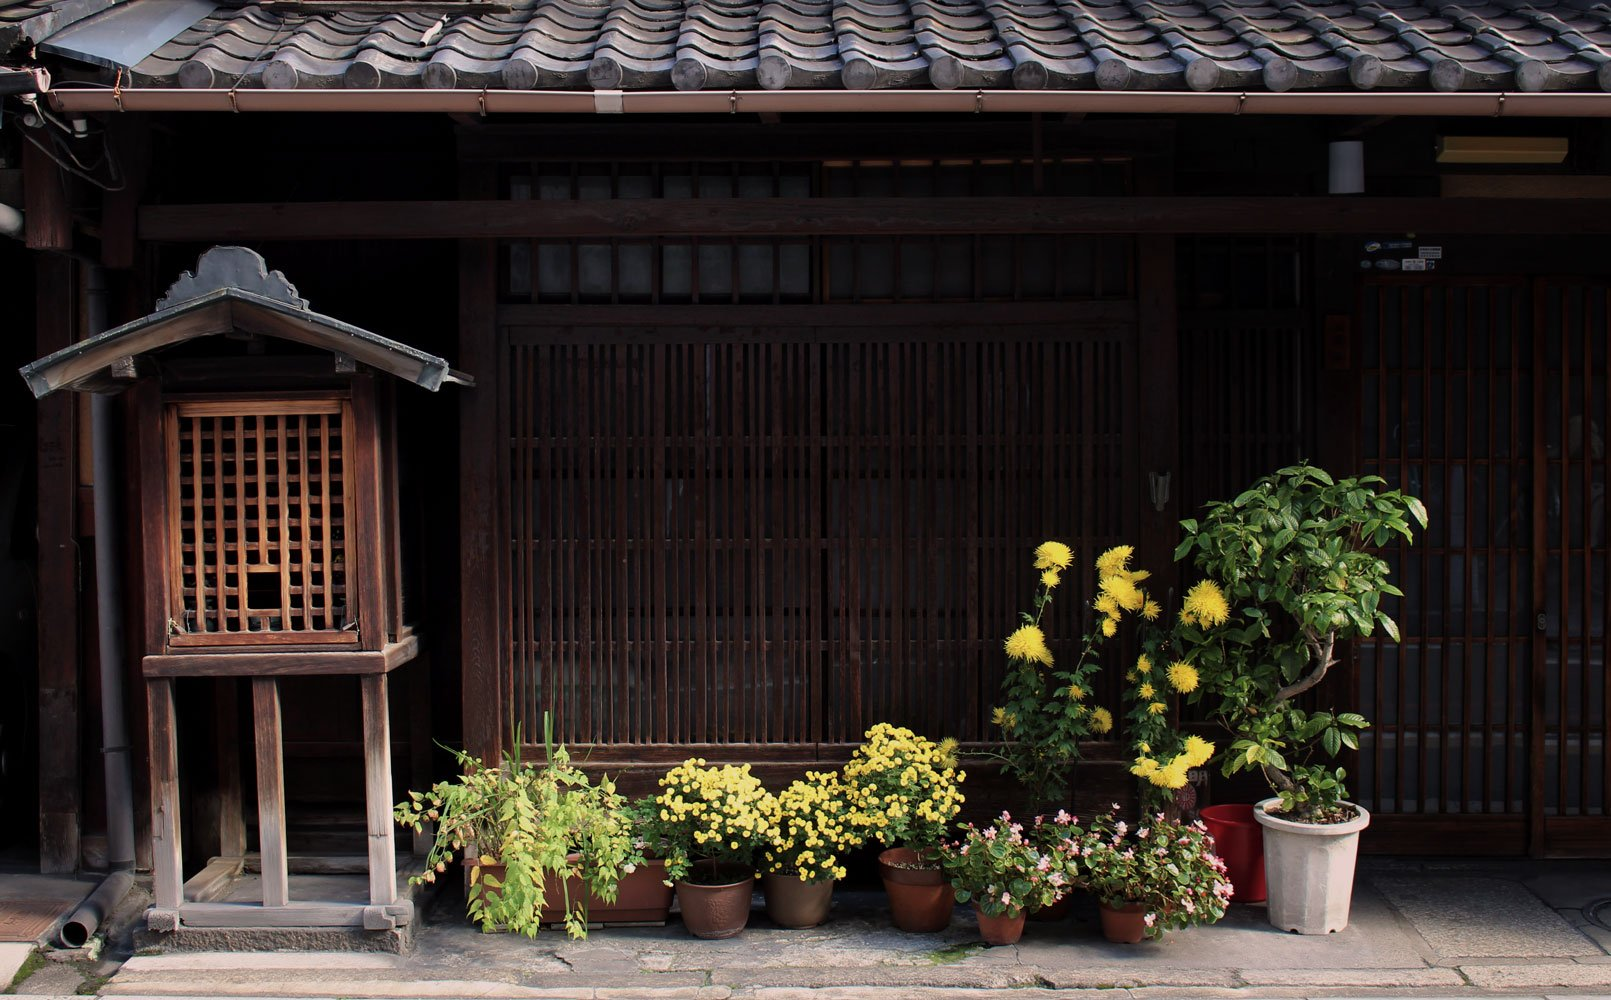 A little scene from the streets of Kyoto.